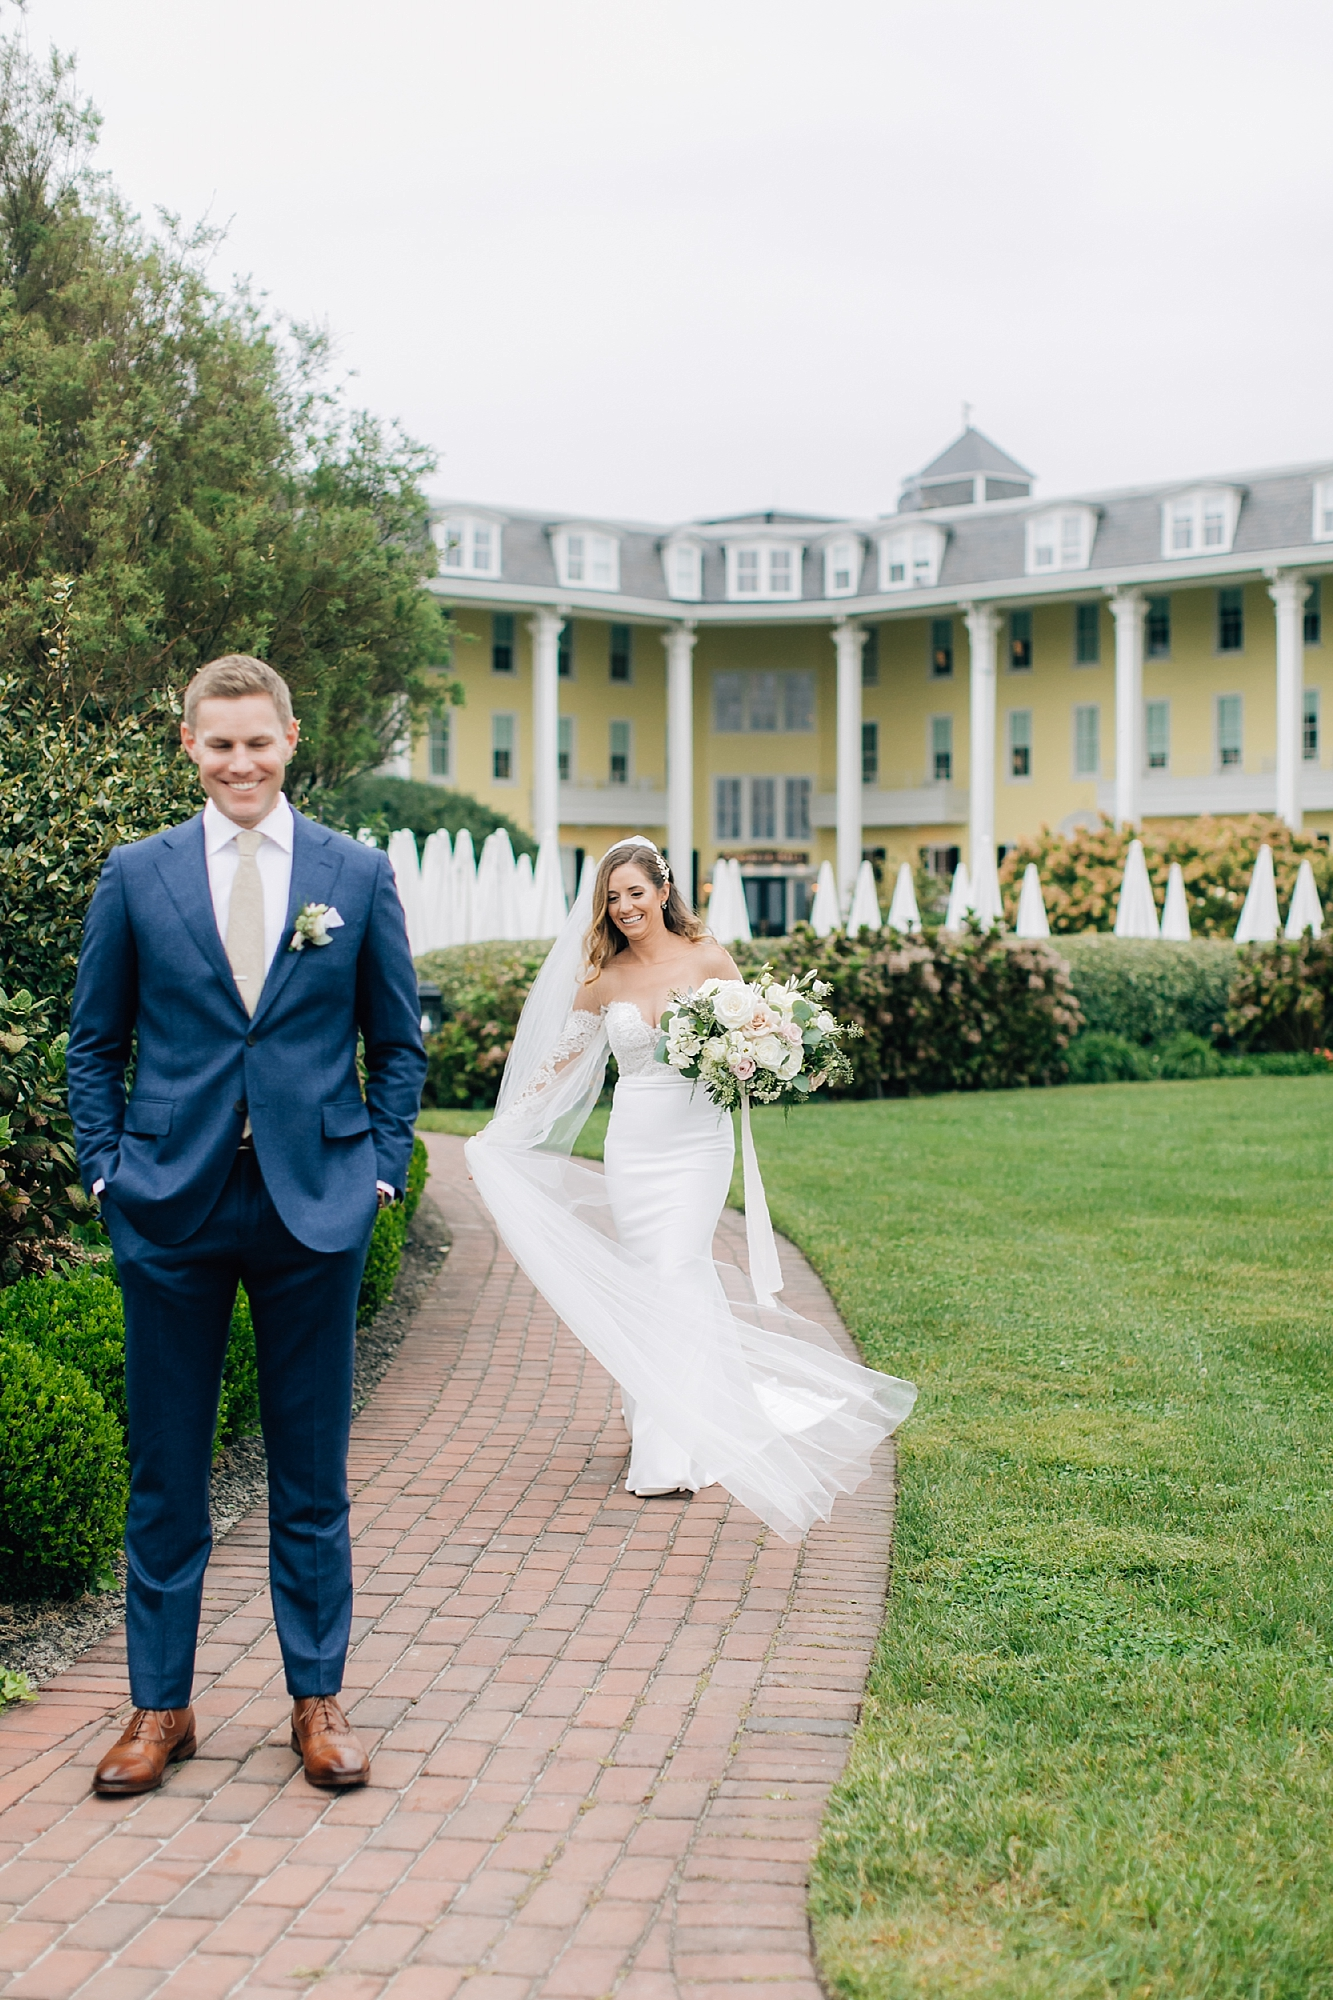 Intimate and Joyful Wedding Photography in Cape May NJ by Magdalena Studios 0010 3